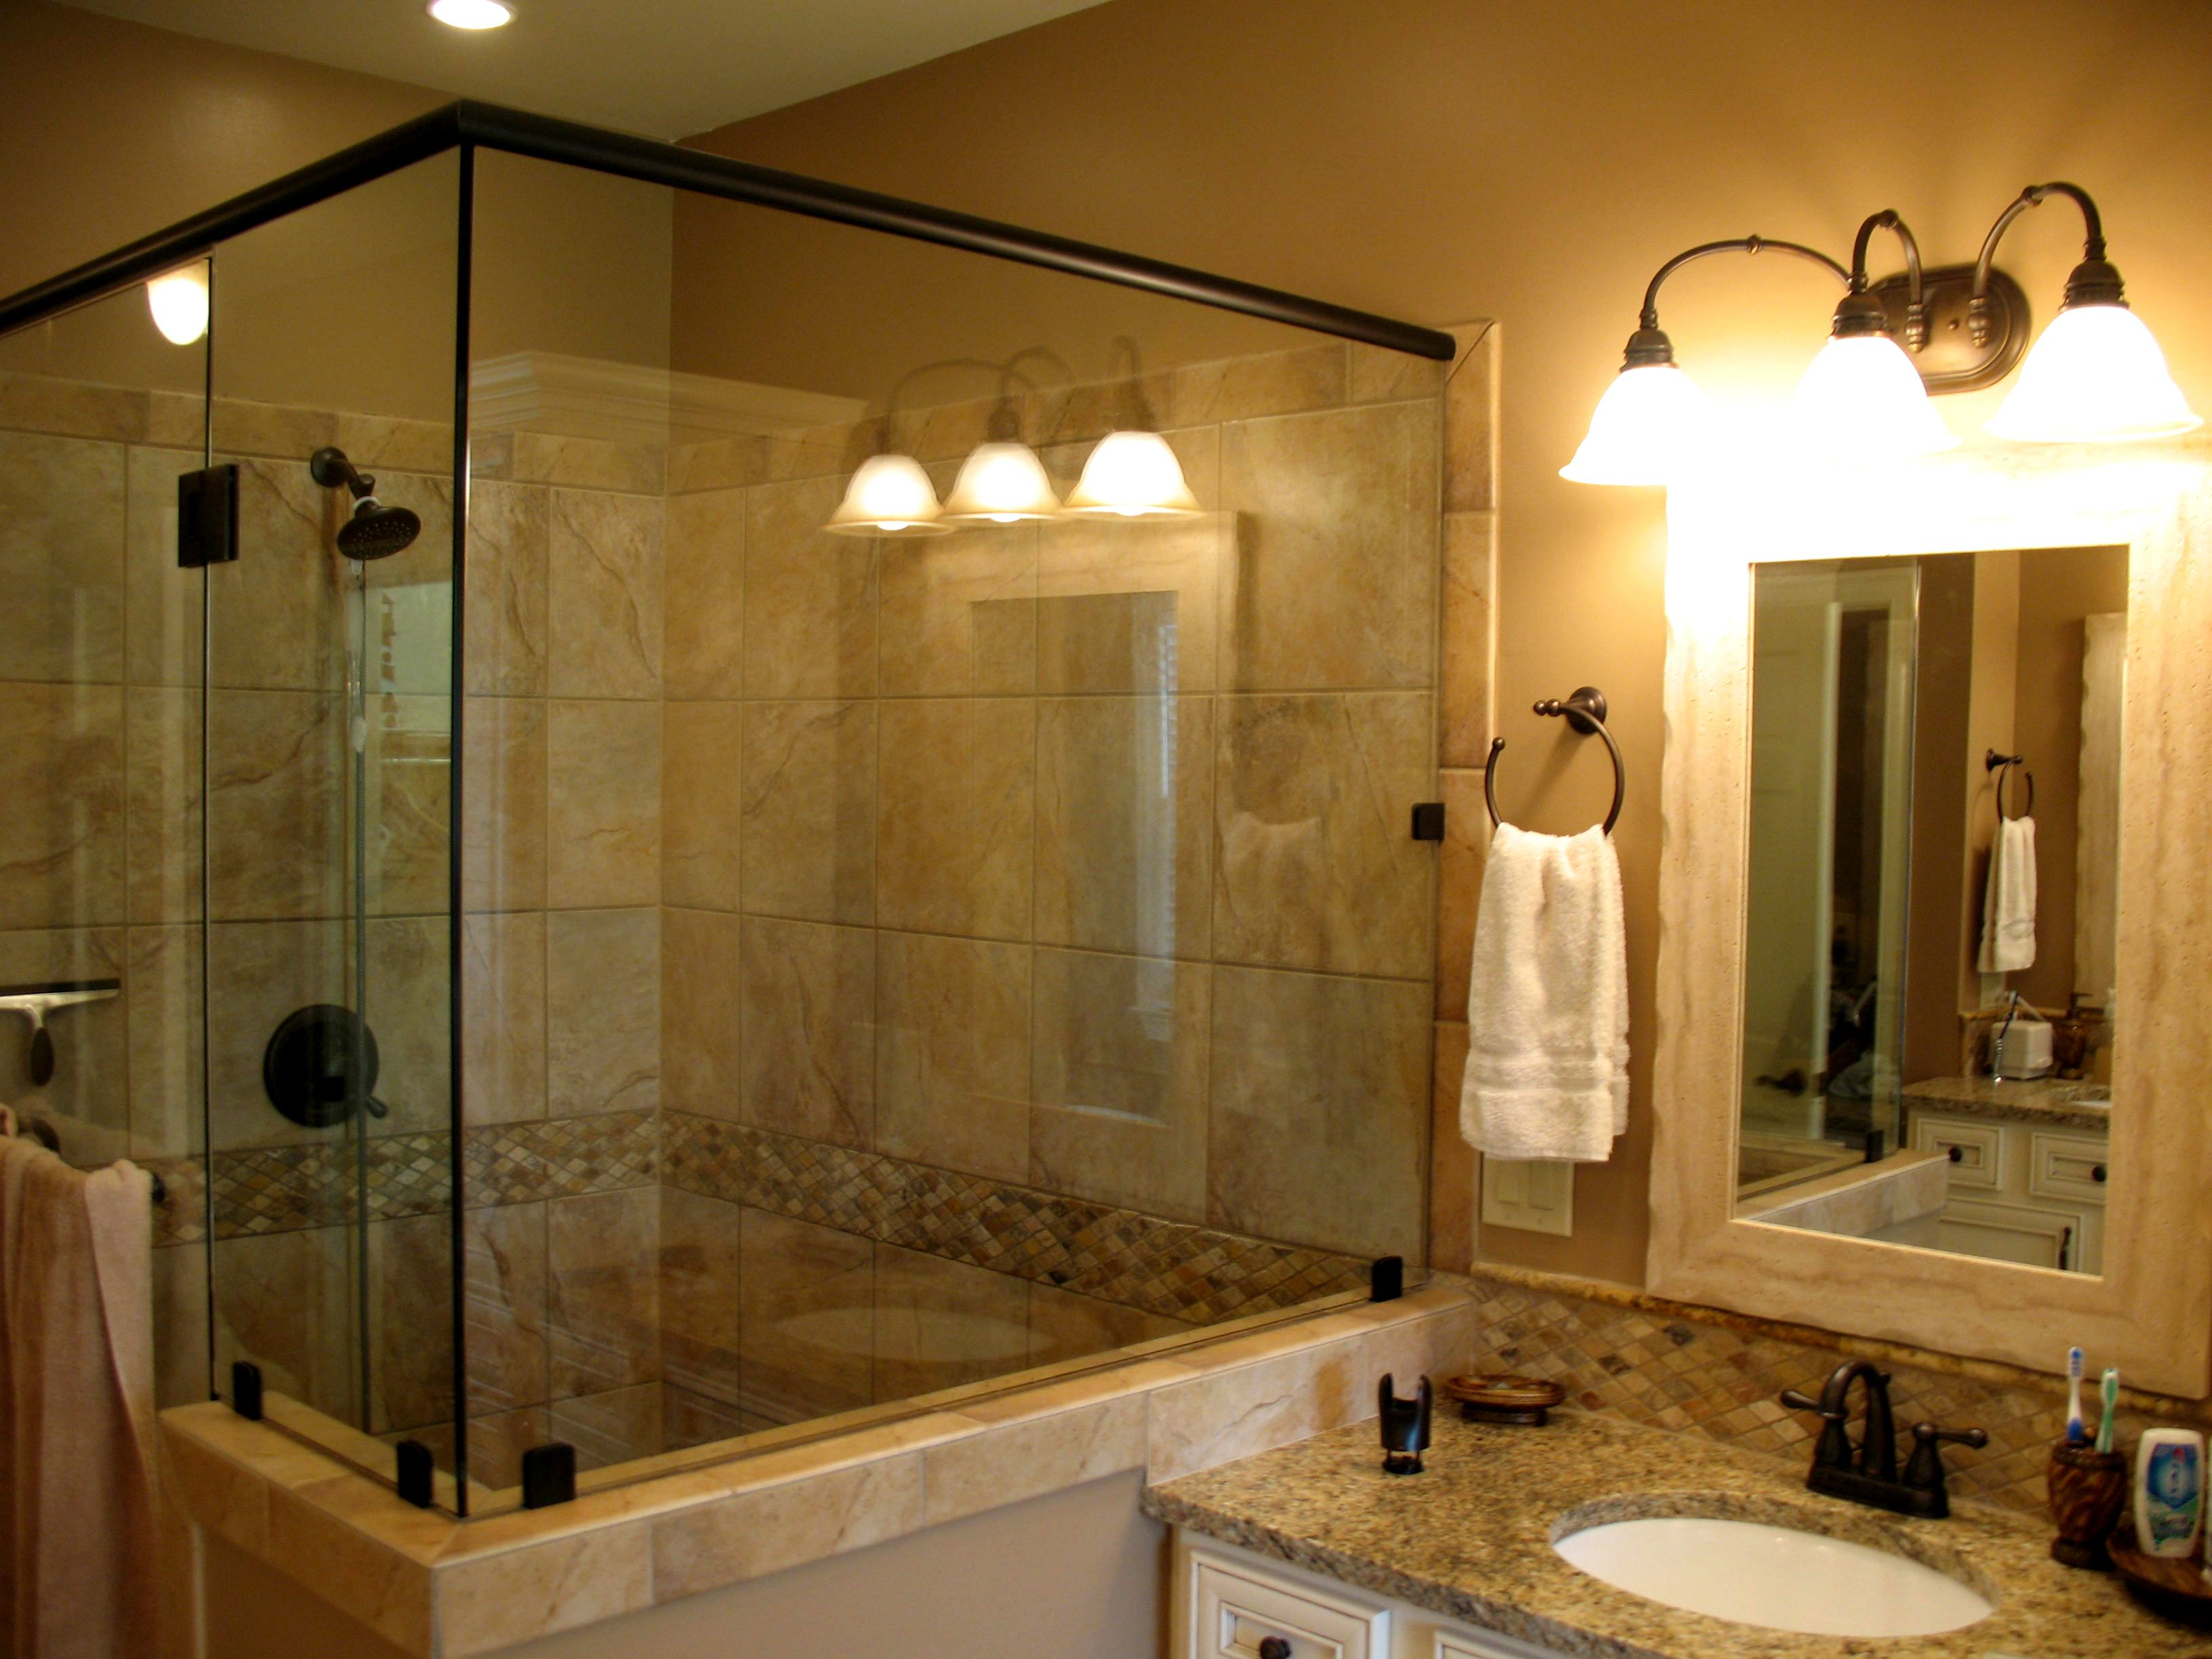 Magnificent Master Bathroom Shower Remodel Ideas 3264 x 2448 · 551 kB · jpeg